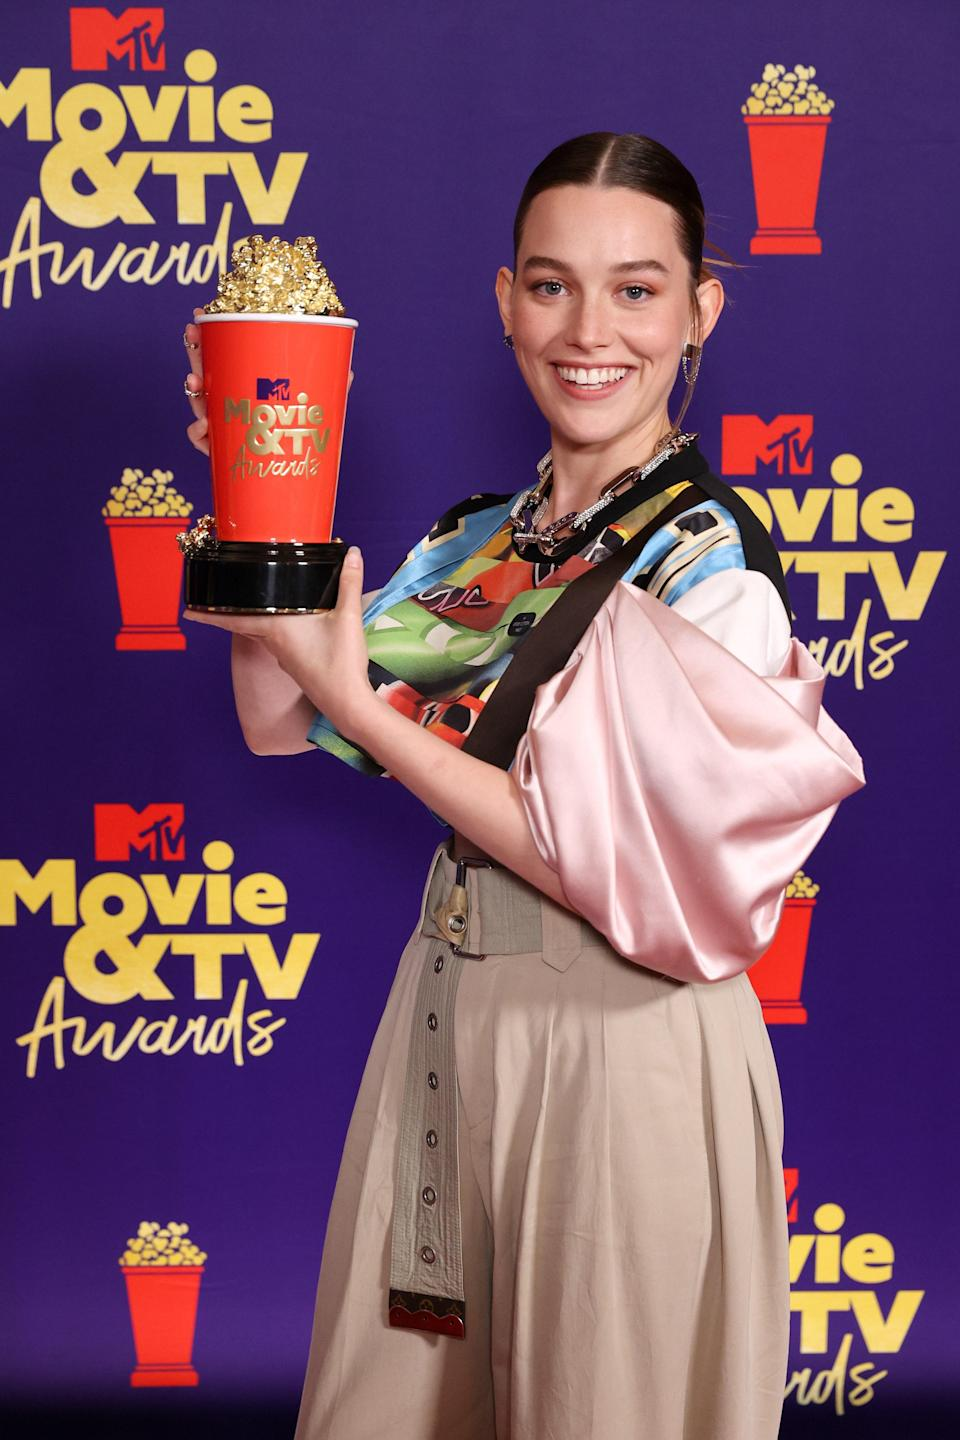 Star of Netflix horror <em>The Haunting</em> series, Victoria Pedretti made a statement in Louis Vuitton. Her stand-out piece was an asymmetric crop top featuring contrasting prints and satin textures. Paired with a chunky silver necklace and khaki oversized pants, everything about her look was <em>elevated</em> casual.